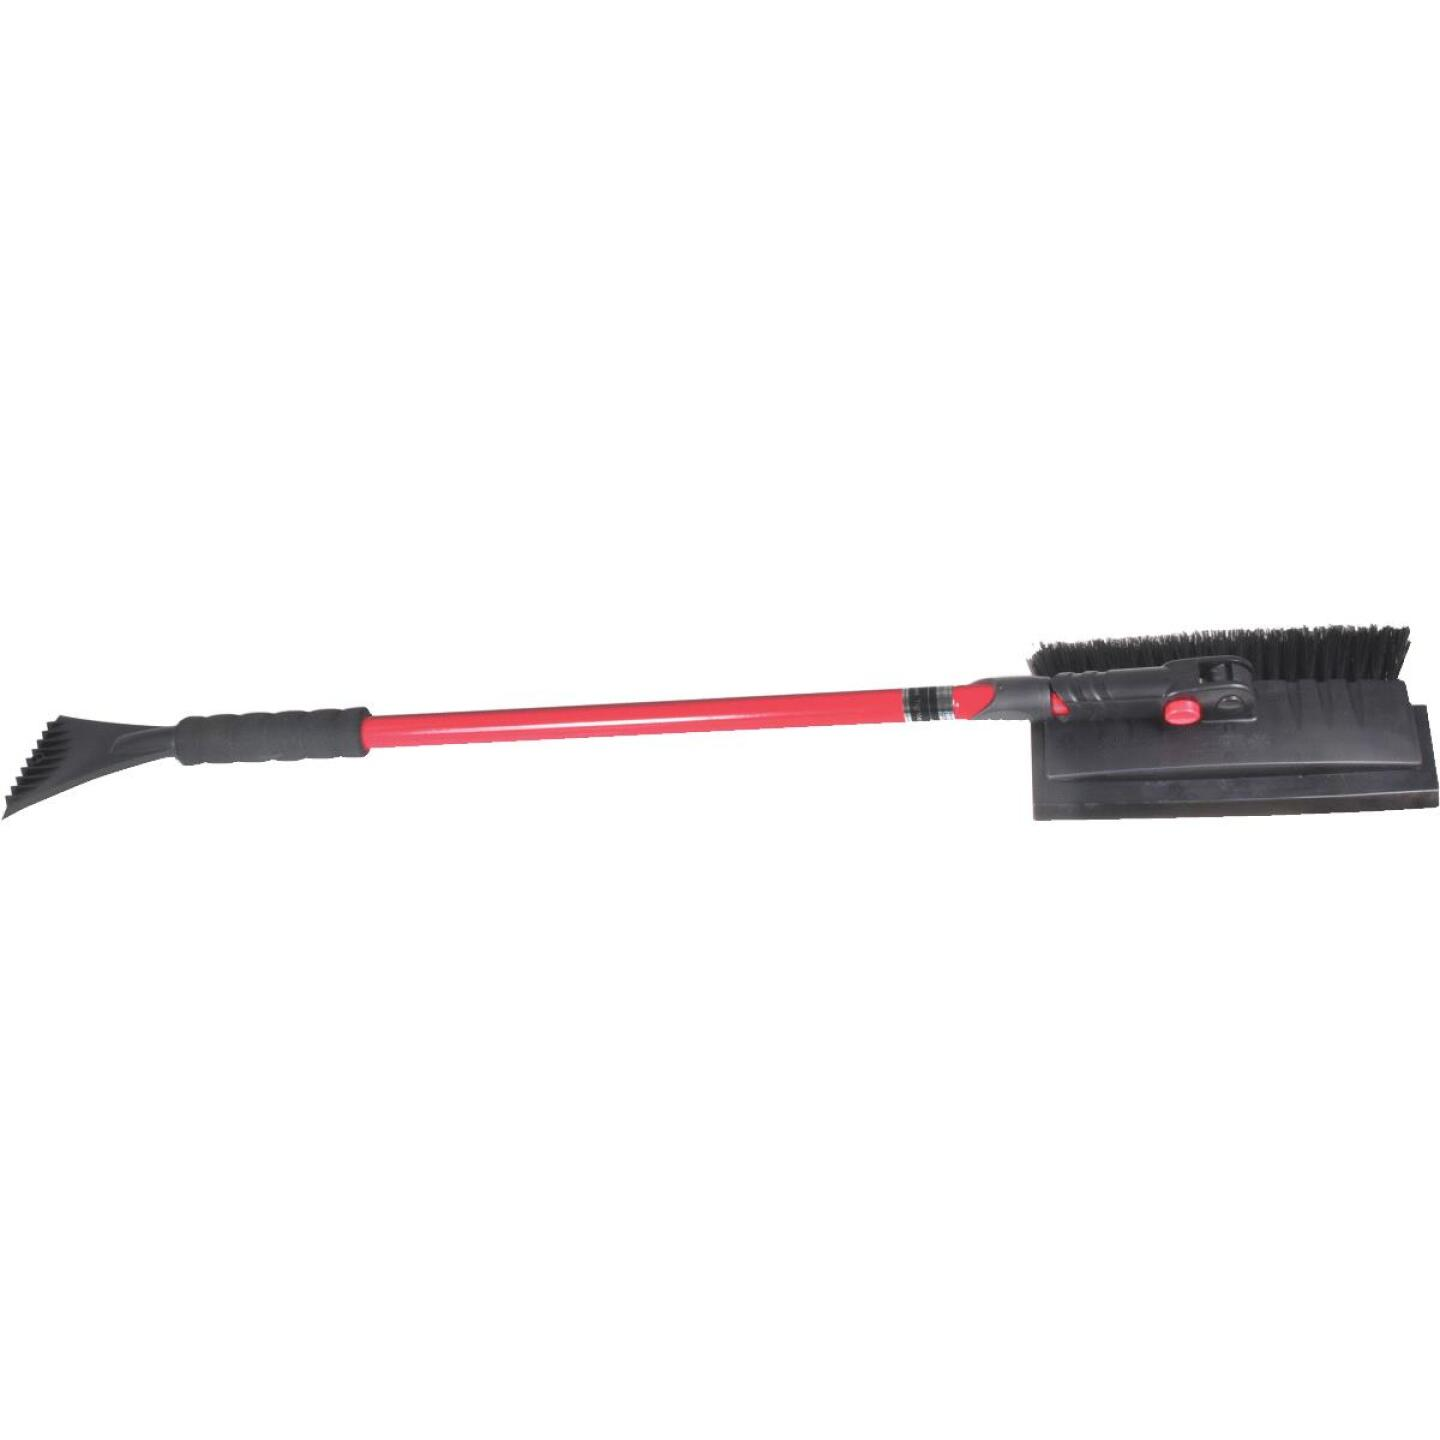 Hopkins Subzero 54 In. Steel Pivoting Snowbrush with Ice Scraper Image 1